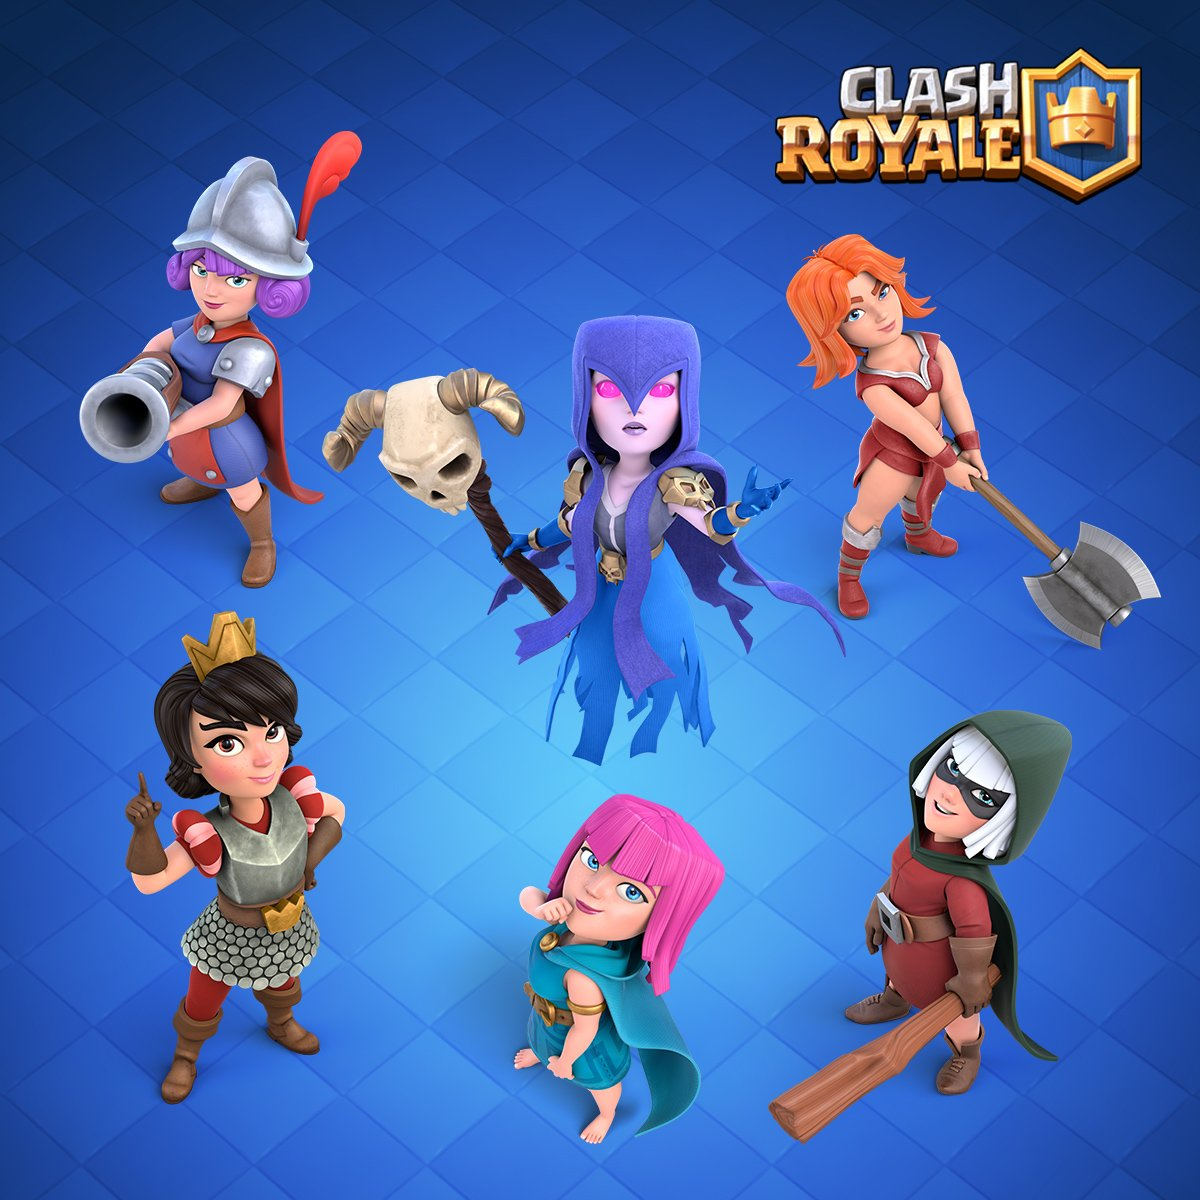 Throughout March we are celebrating the women of Royale with unique Quests, Challenges and more! 🙆♀️  Happy #InternationalWomensDay to all our Legendary Ladies out there in the Arena 💪 https://t.co/1DfvrdDjQC